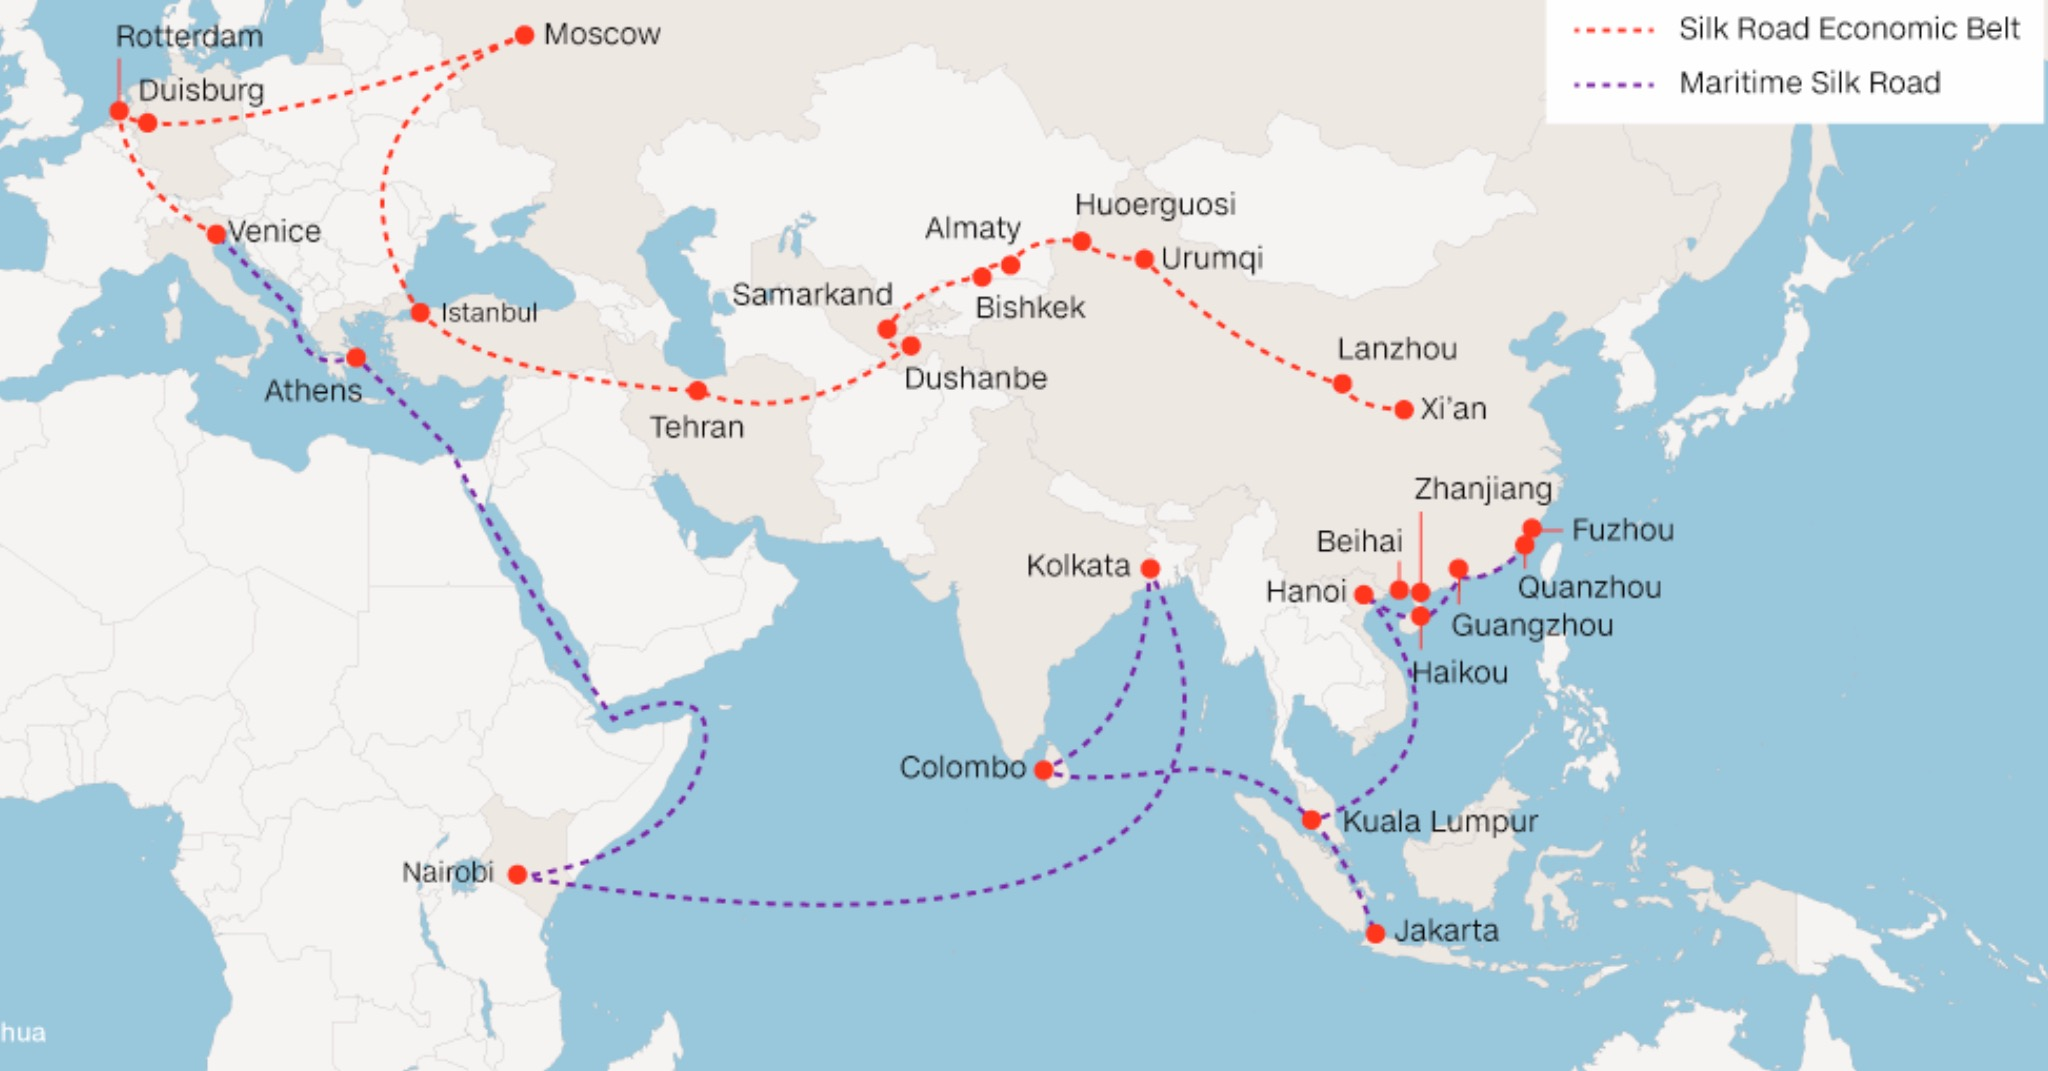 ONE BELT, ONE ROAD - GREAT INITIATIVE OR A ROAD TO NOWHERE